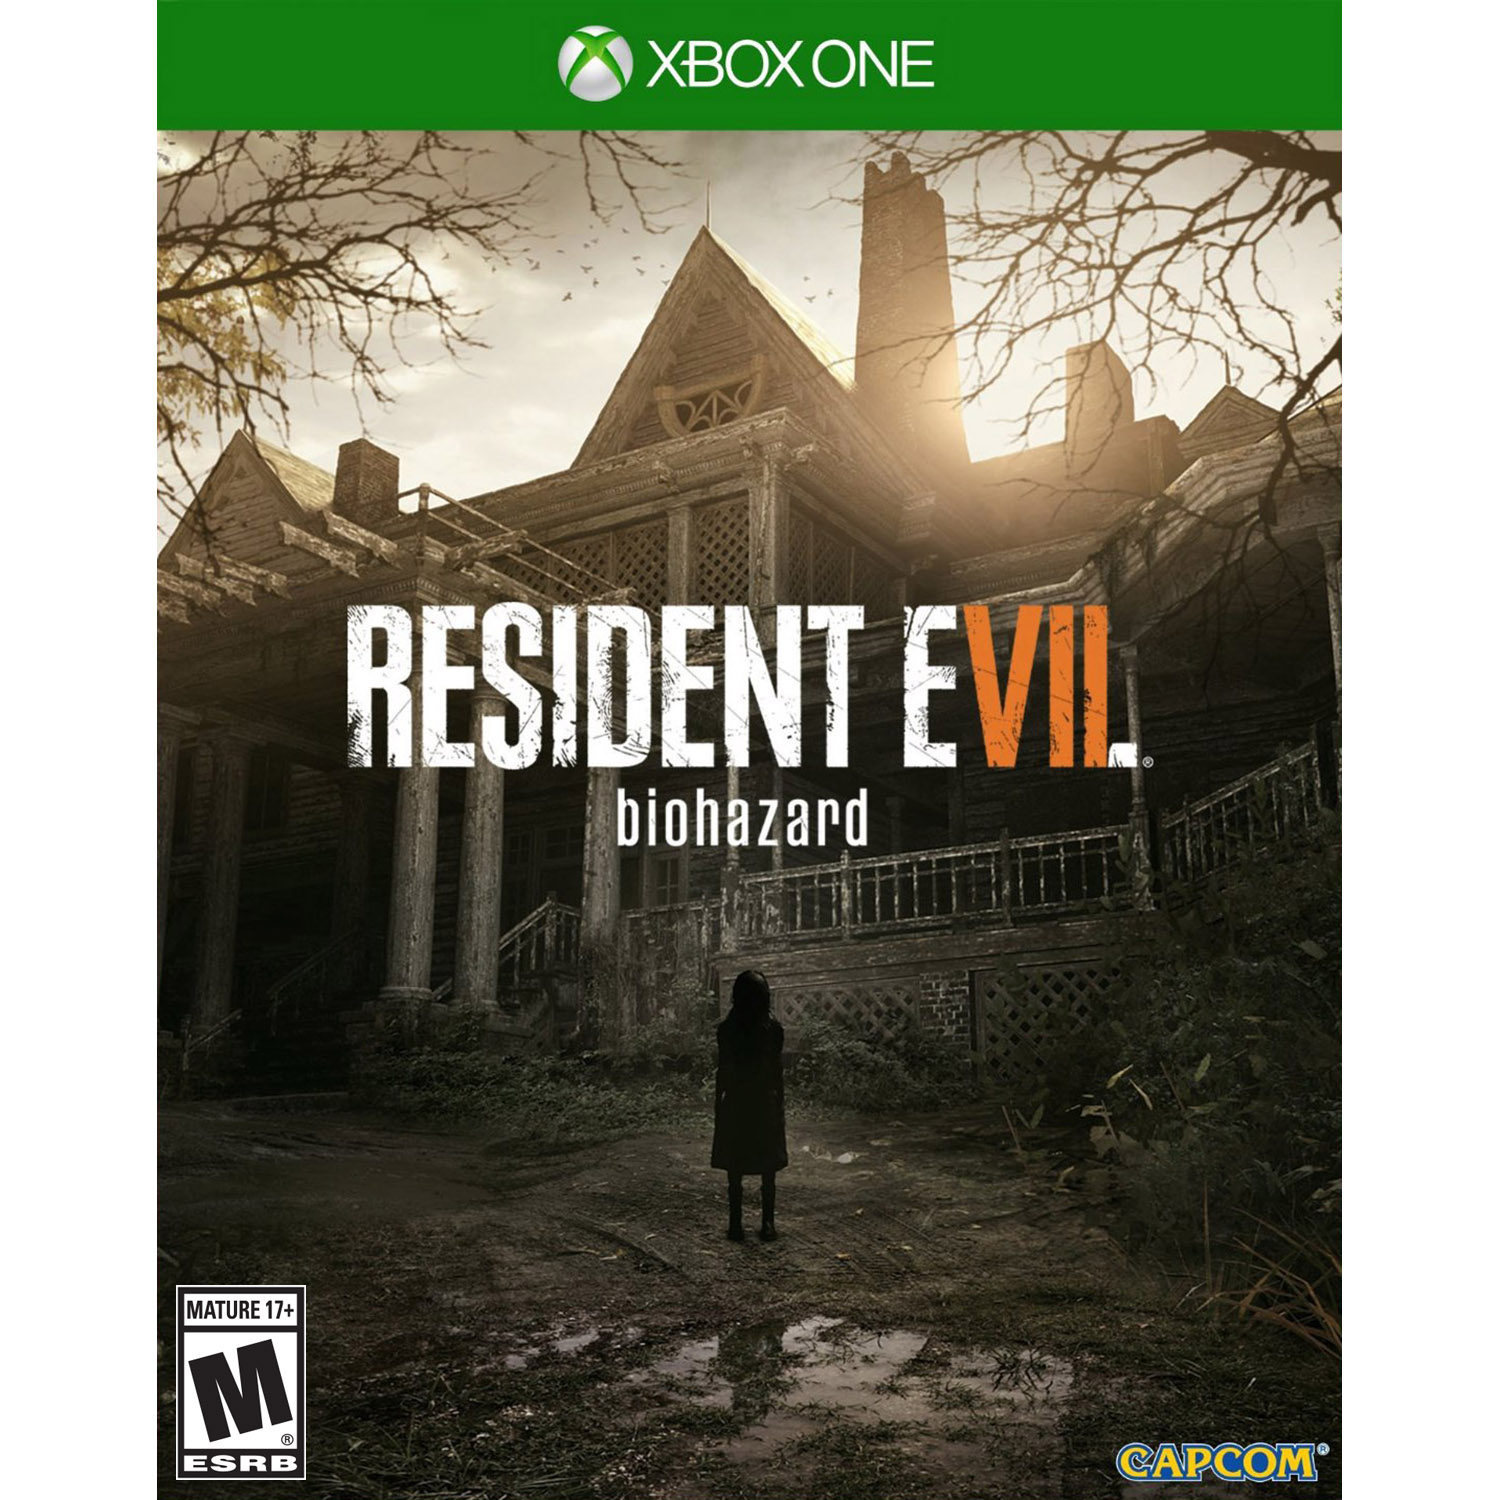 Resident Evil 7, Capcom, Xbox One, 013388550173 by Capcom